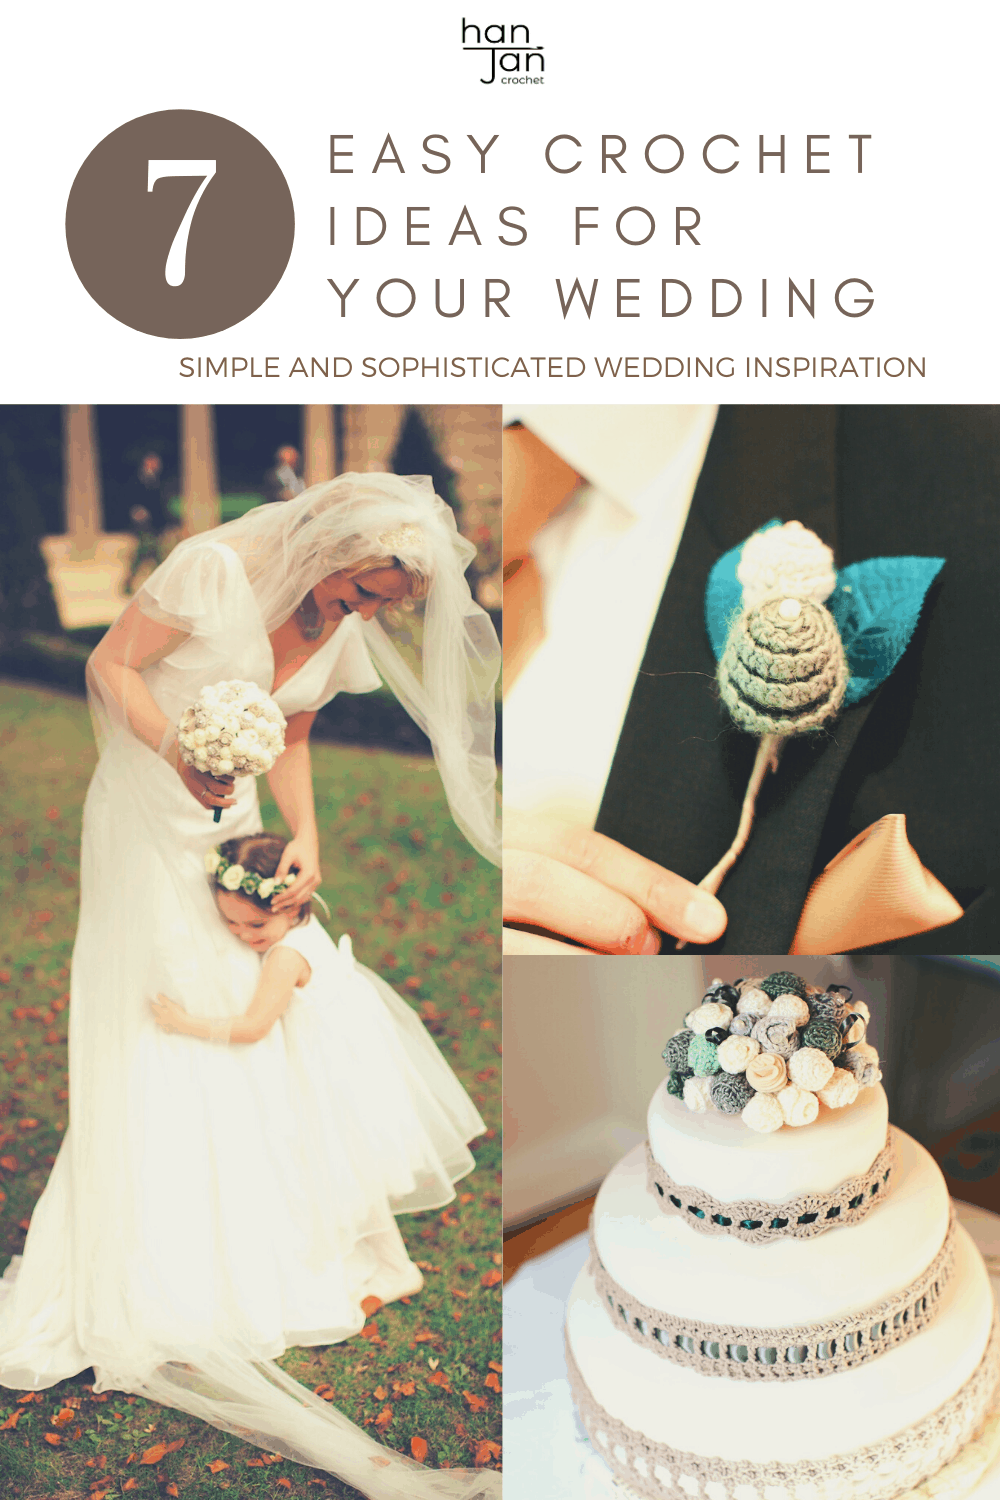 Get sophisticated wedding inspiration with my 7 wedding crochet ideas including crochet bouquets, cake topper and buttonholes for your DIY wedding plans.